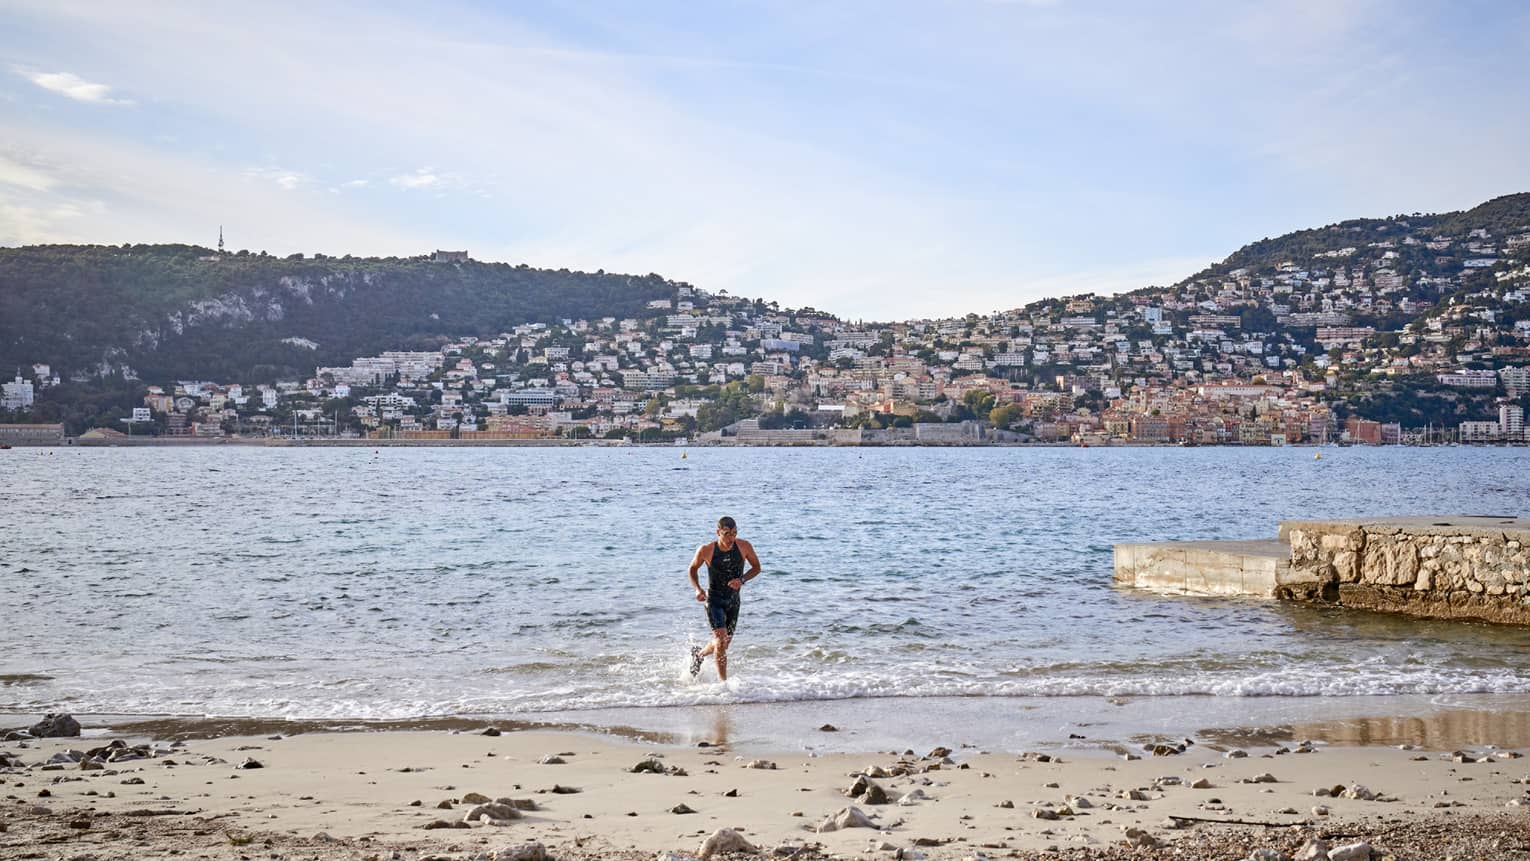 Man jogging in water toward sandy shore, hills in backdrop